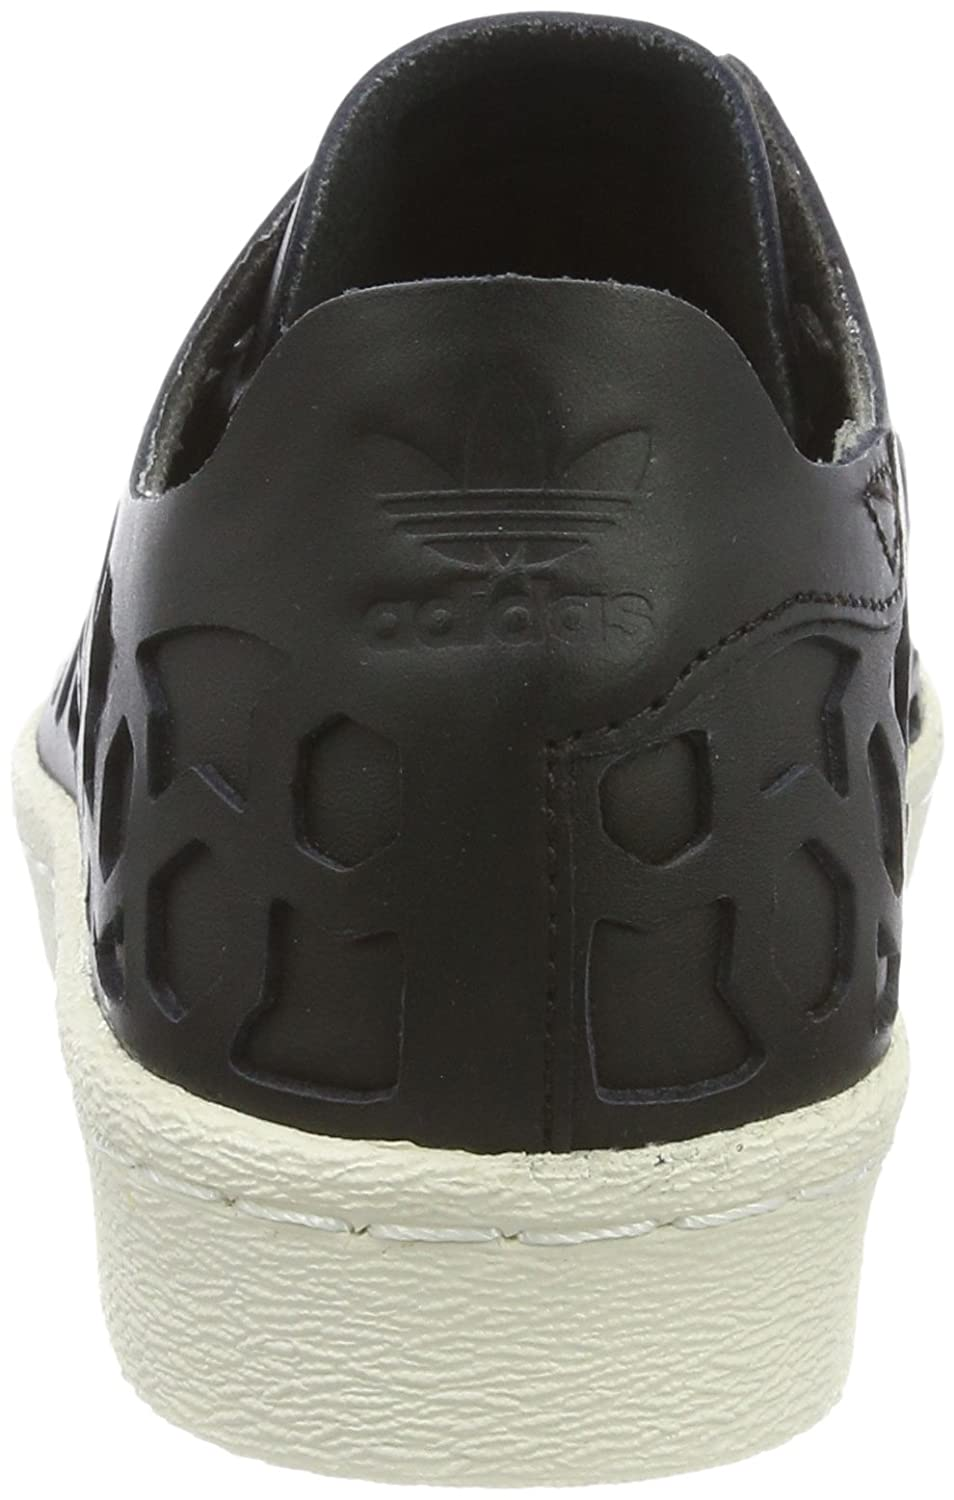 cheaper d0562 5728d adidas Women s Superstar 80s Cut Out Low-Top Sneakers  Amazon.co.uk  Shoes    Bags